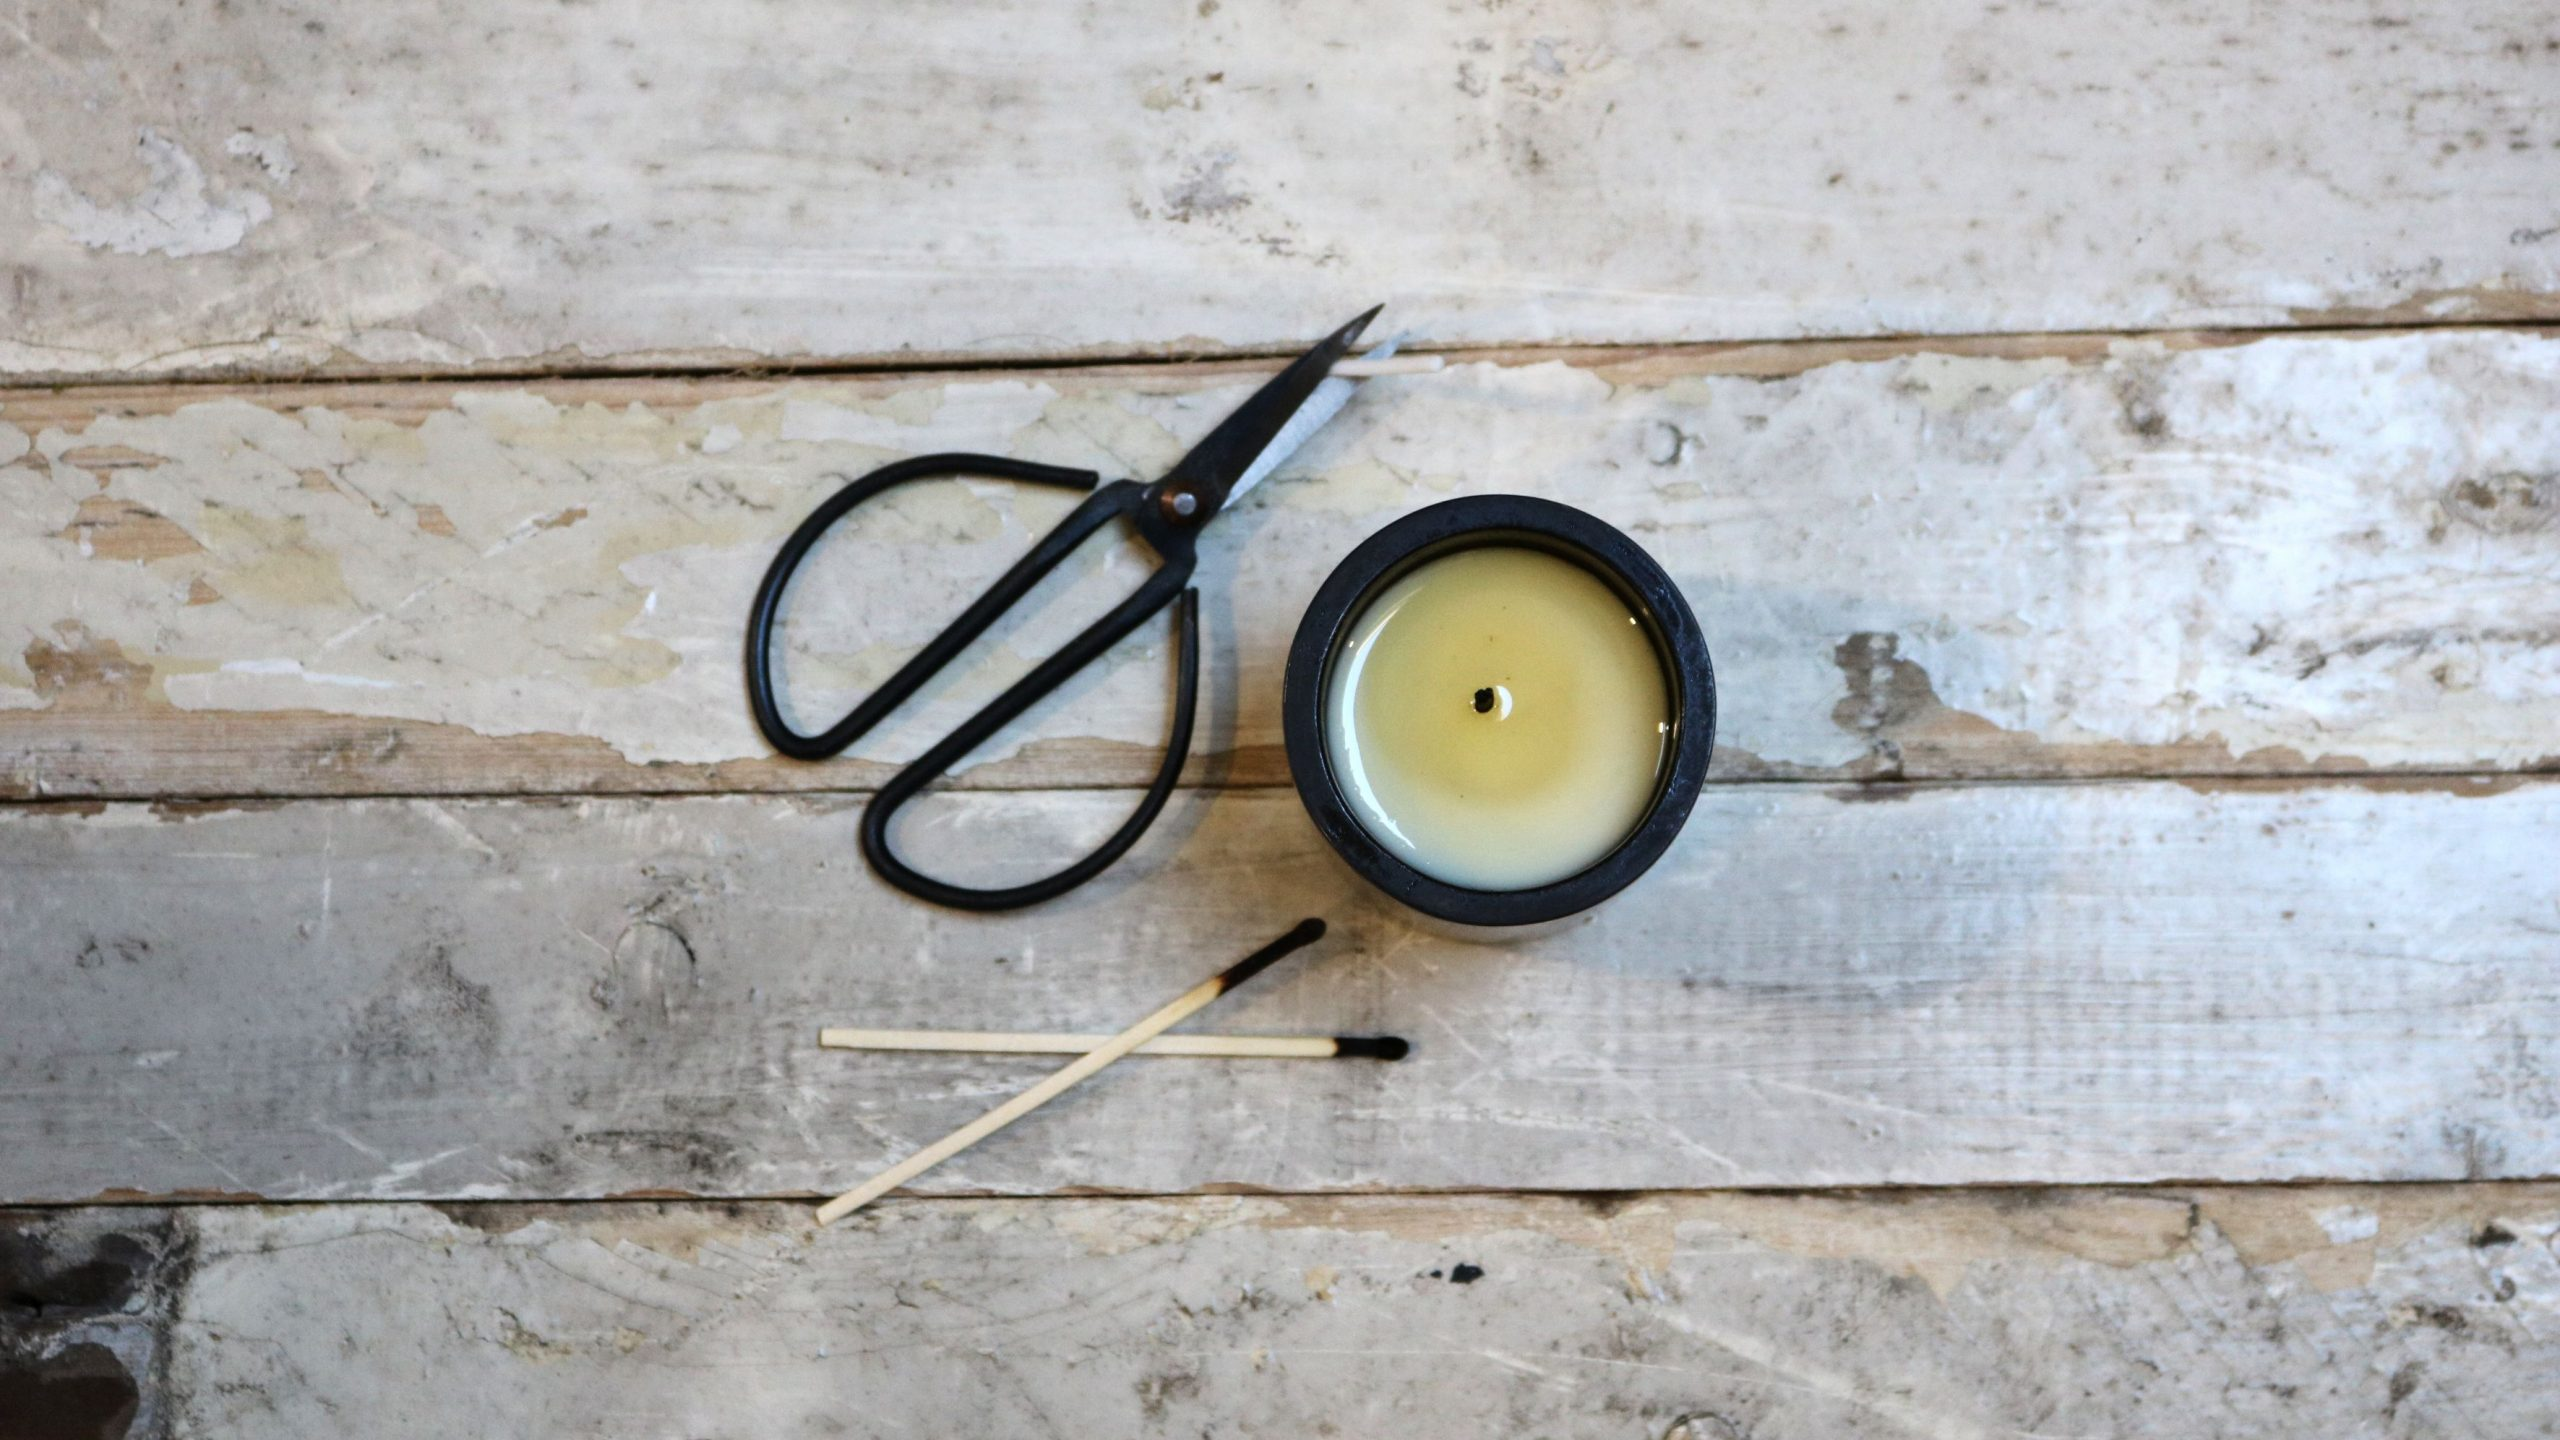 Candle care image, wick cutter, matches, blown out candle